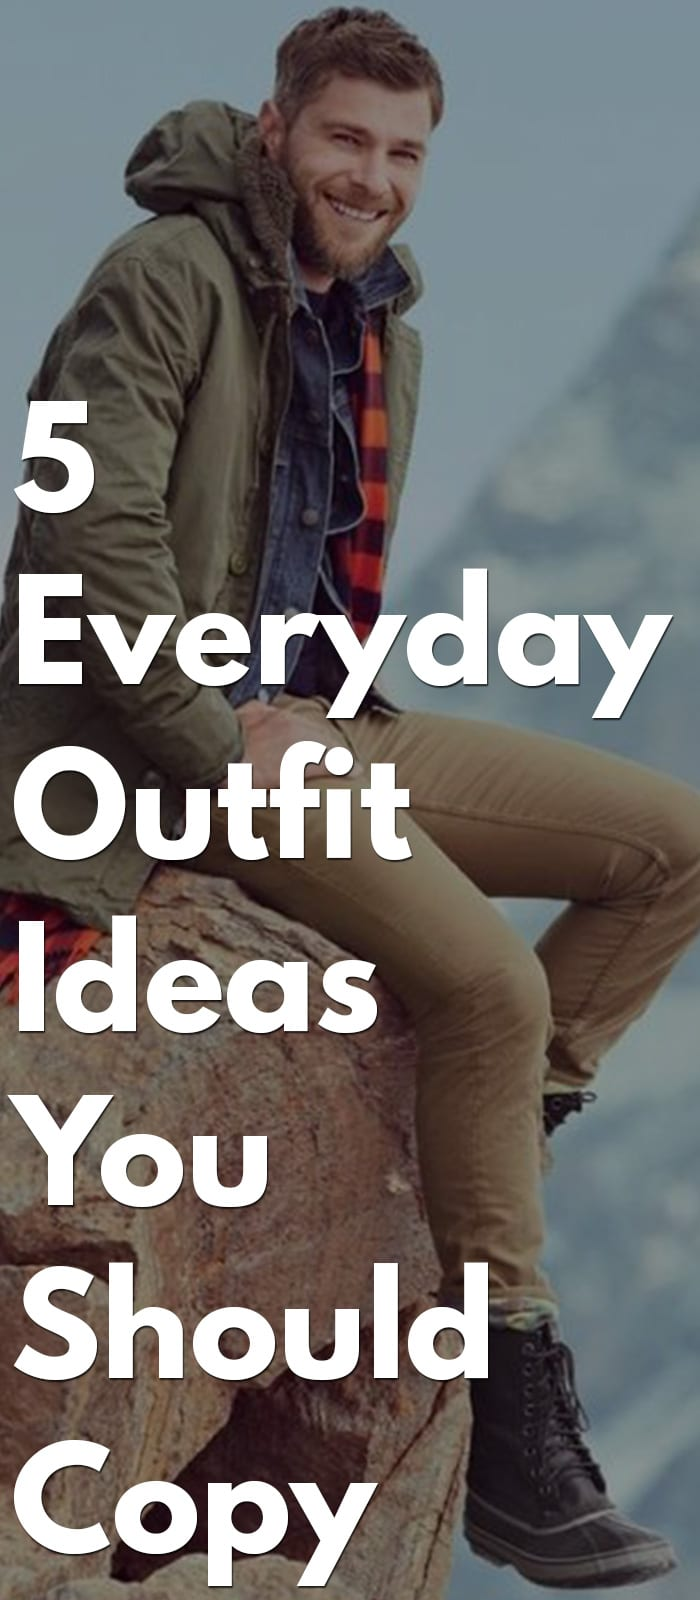 5 Everyday Outfit Ideas